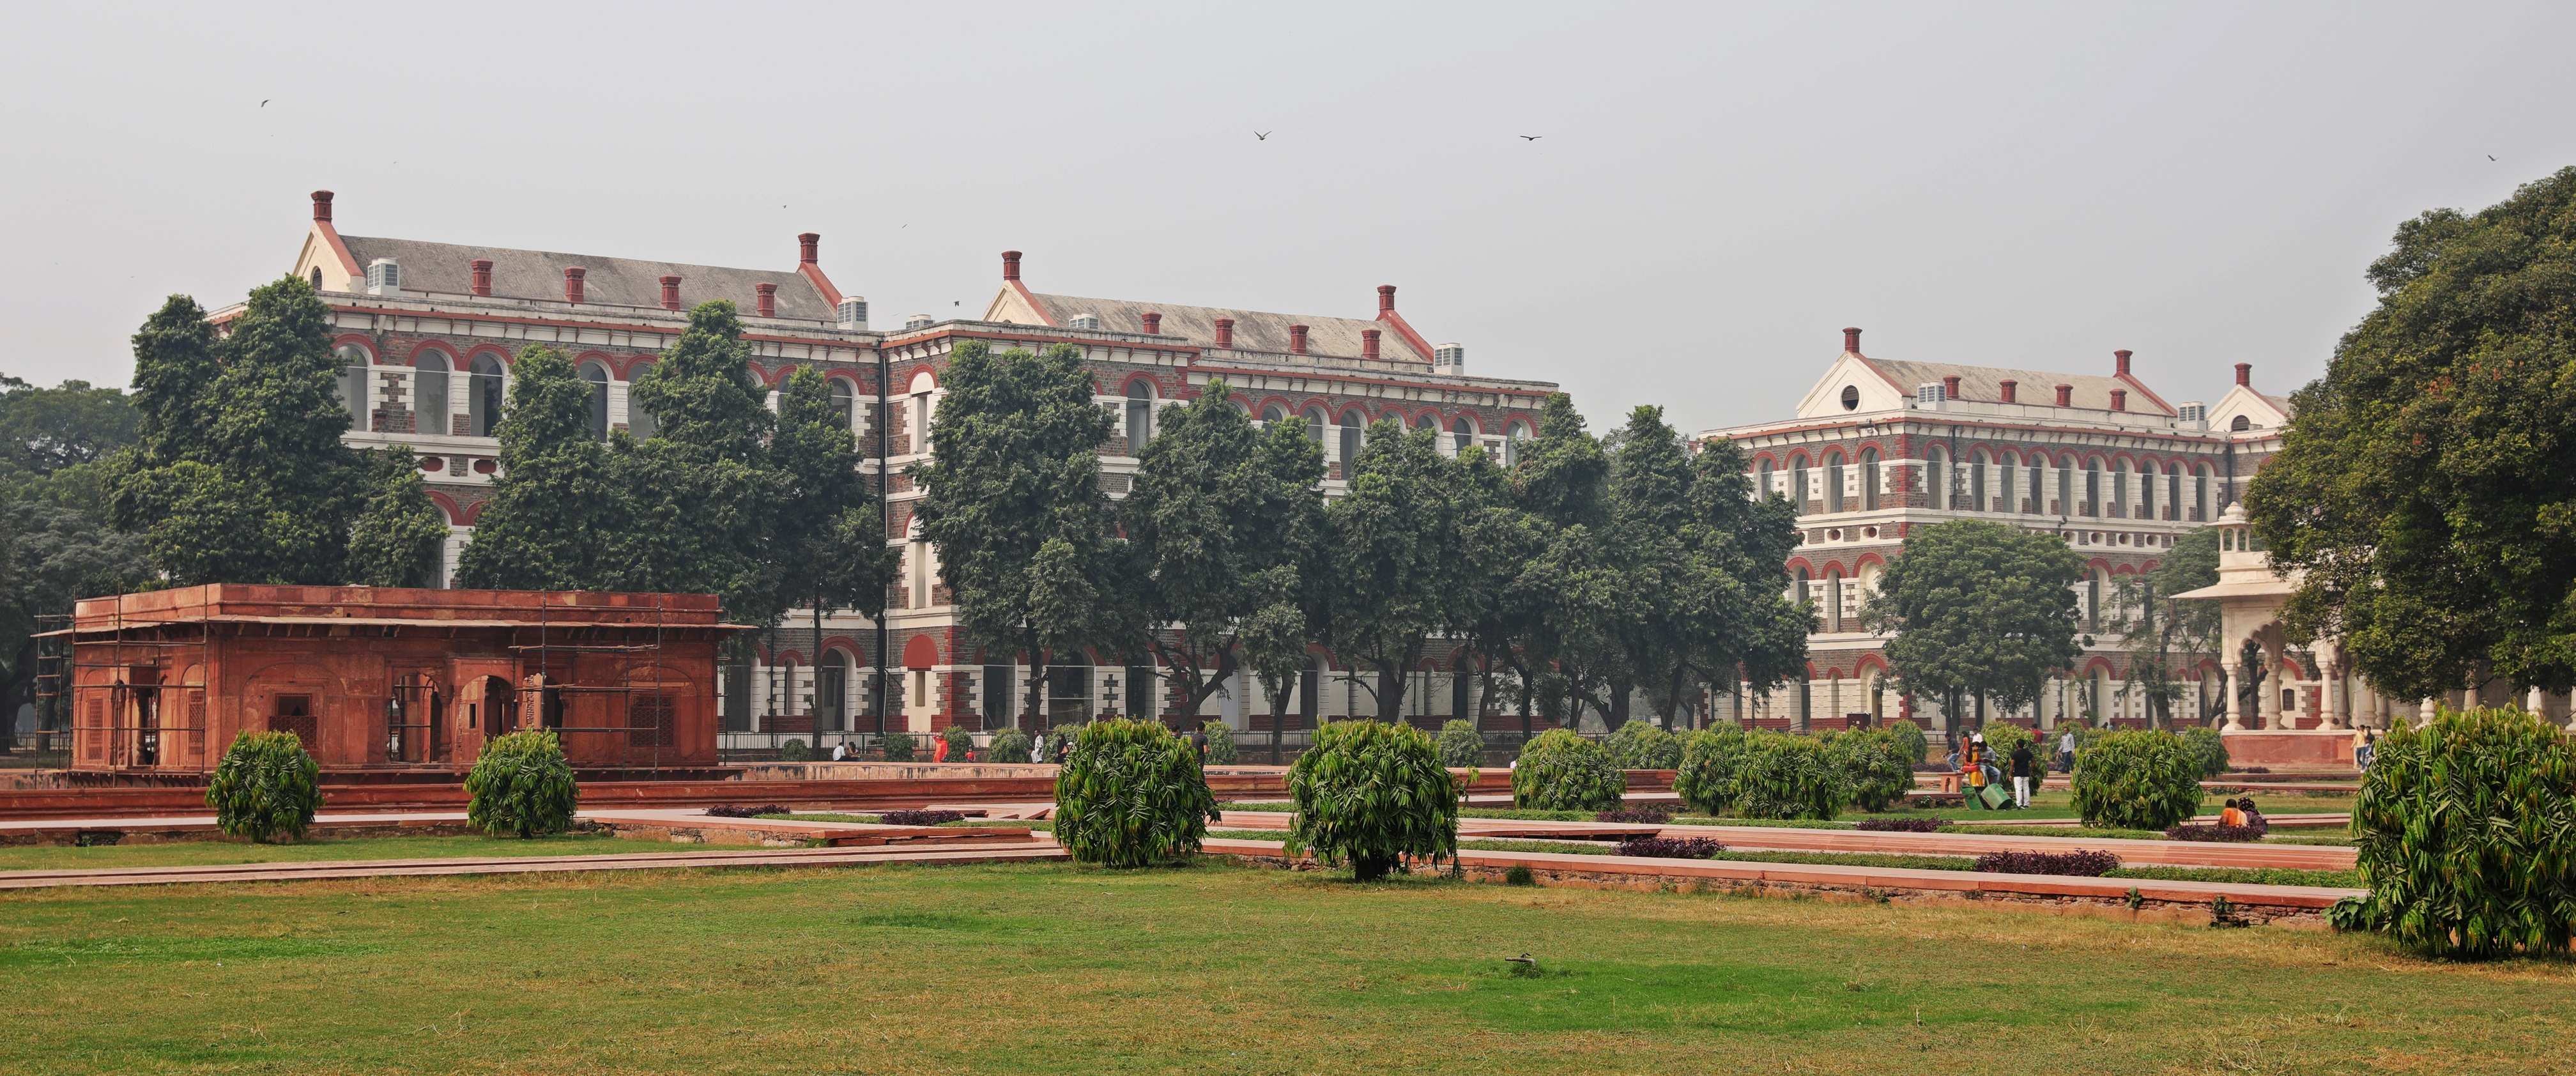 Grounds of Red Fort, Delhi